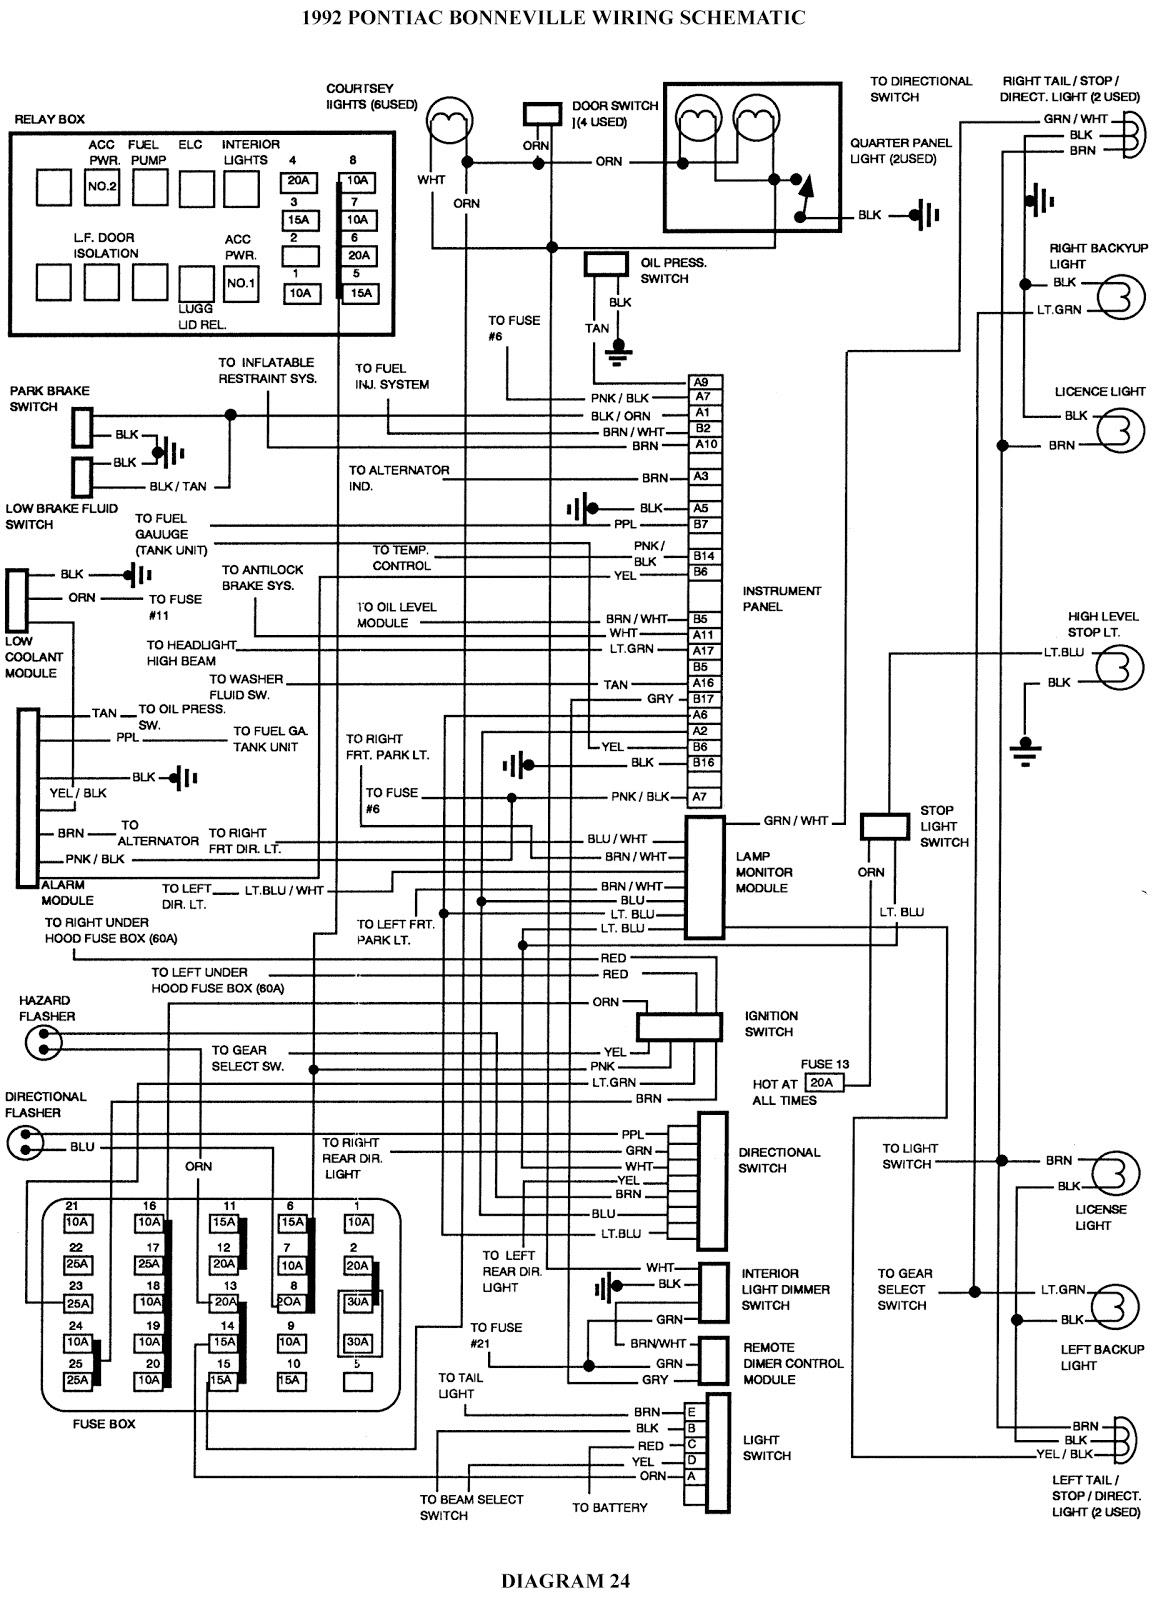 1992 pontiac bonneville wiring schematic schematic With s10 speaker wiring in addition 1992 mercury sable radio wiring diagram